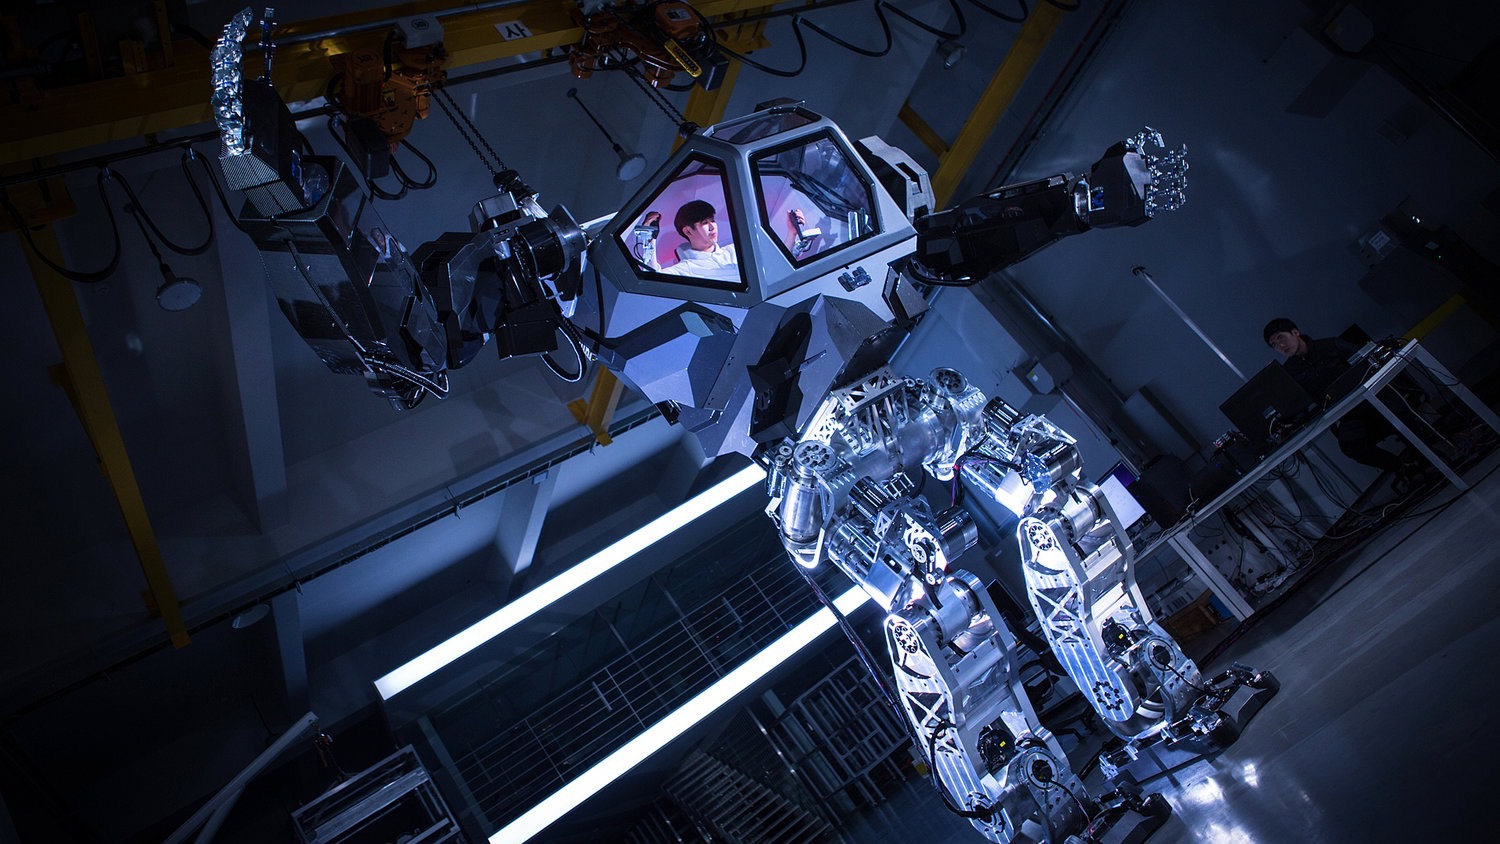 Hankook Mirae Technology Built A 13 Foot Avatar Like Manned Robot Called The Method 2 Quartz